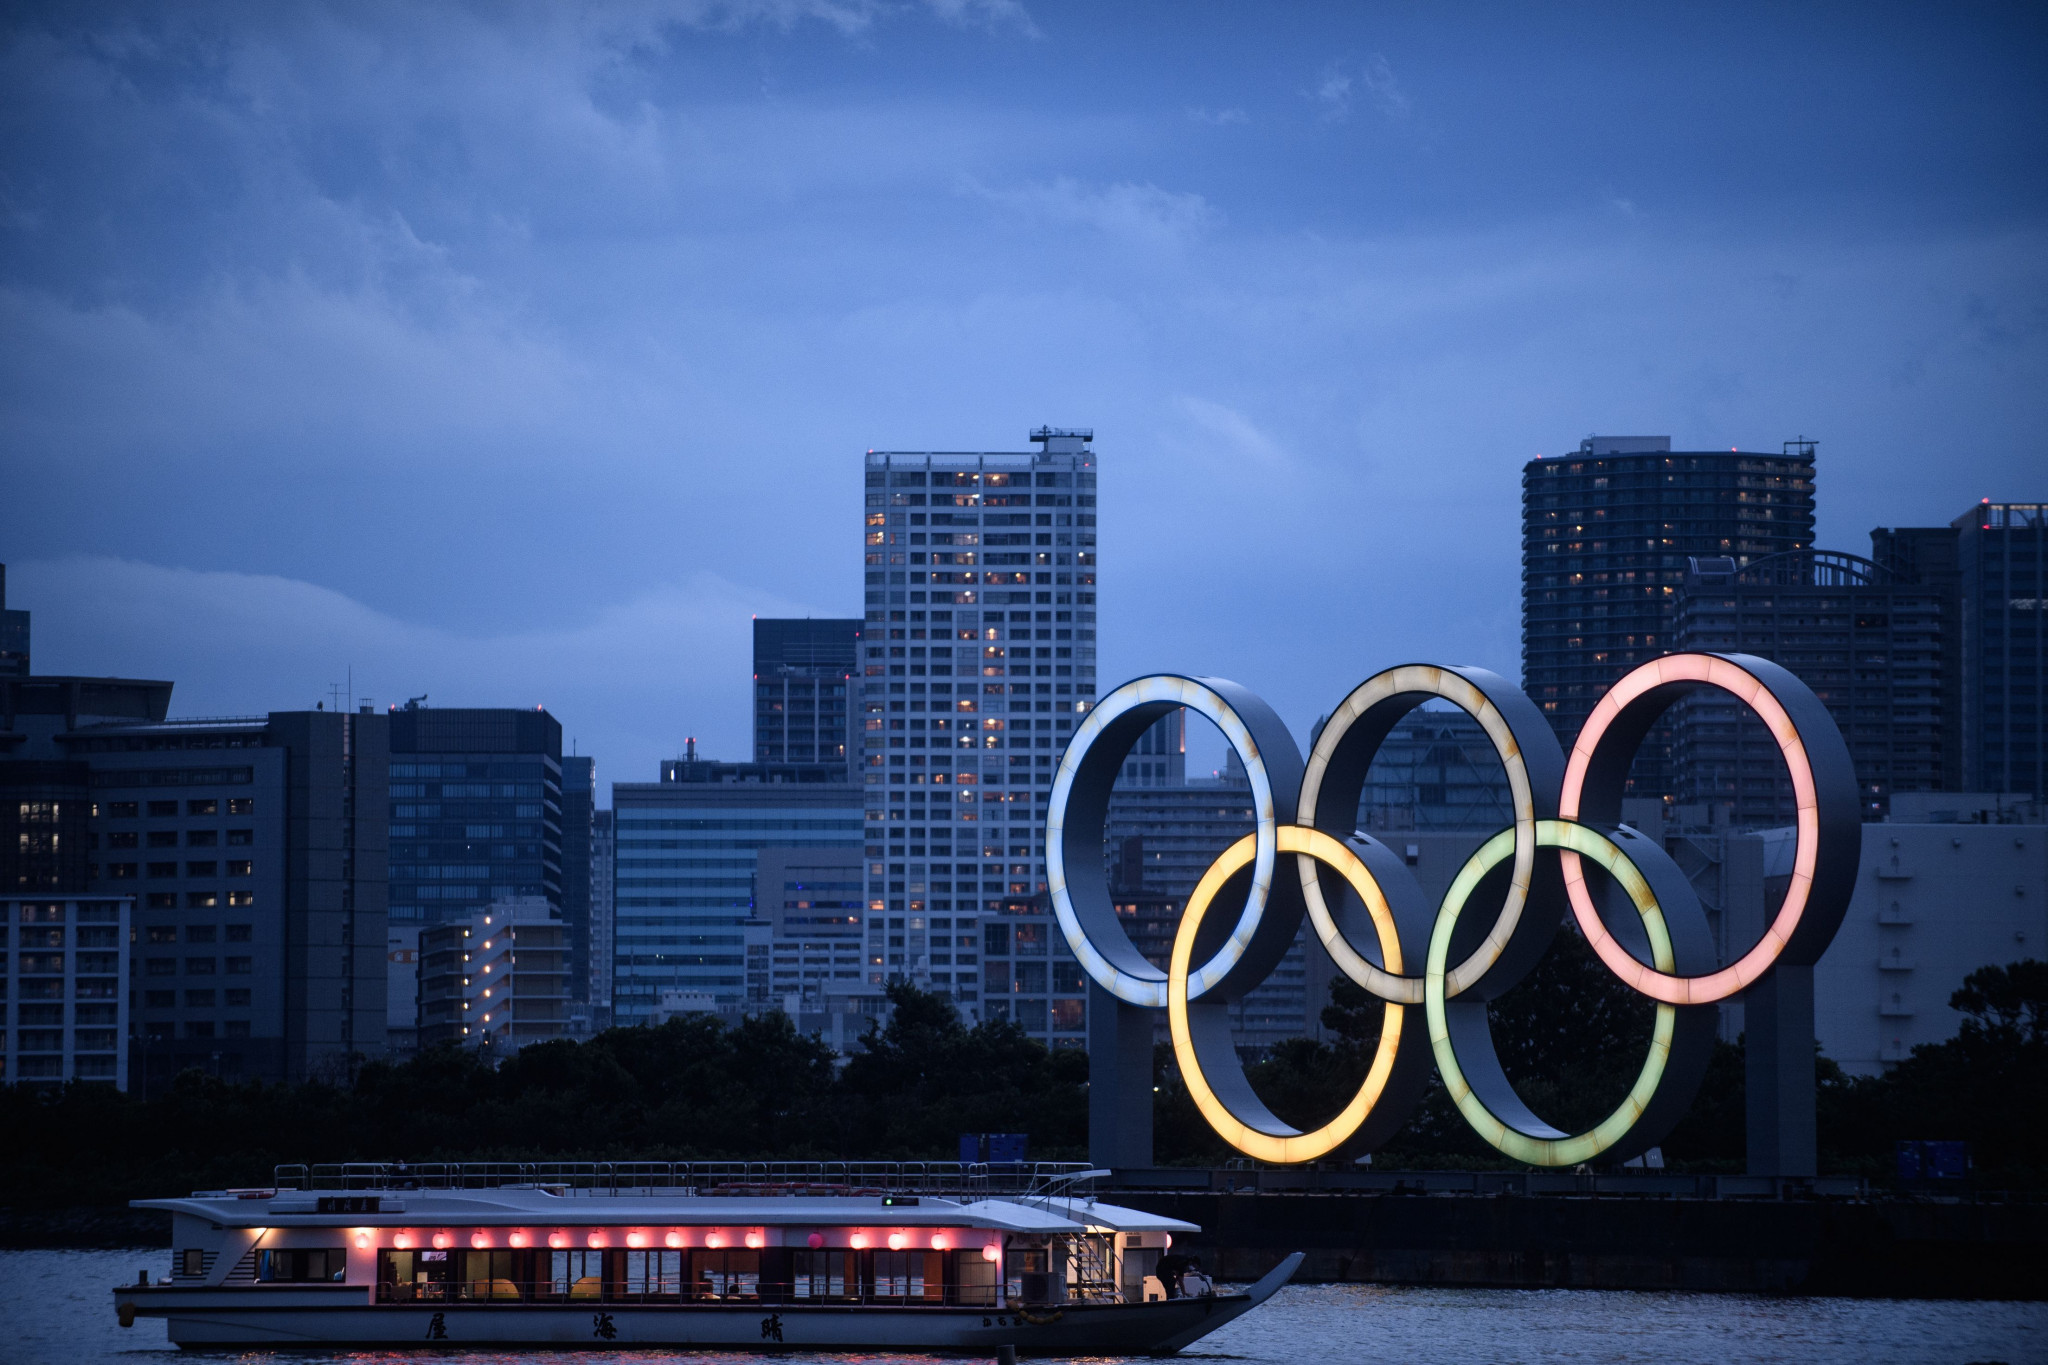 Concerns remain over coronavirus ahead of Tokyo 2020 ©Getty Images